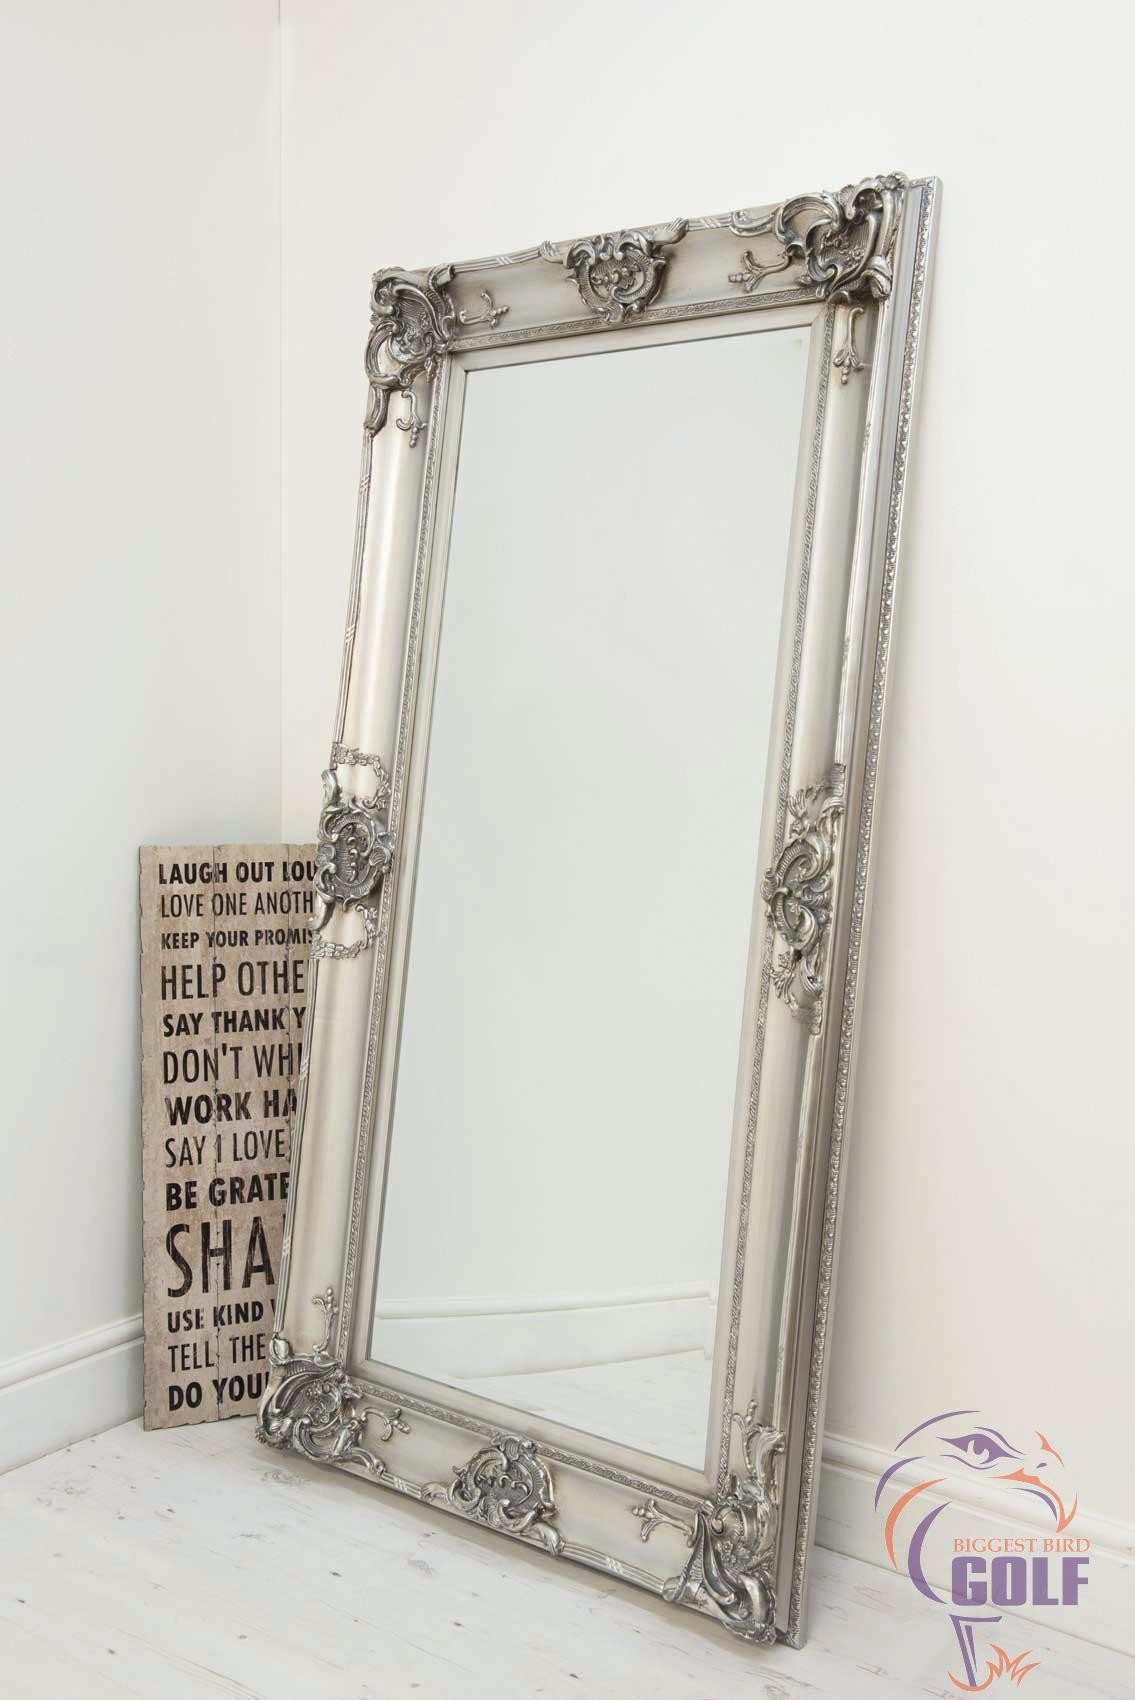 BEAUTIFUL LARGE SILVER DECORATIVE ORNATE WALL MIRROR 6FT X 3FT 183 X